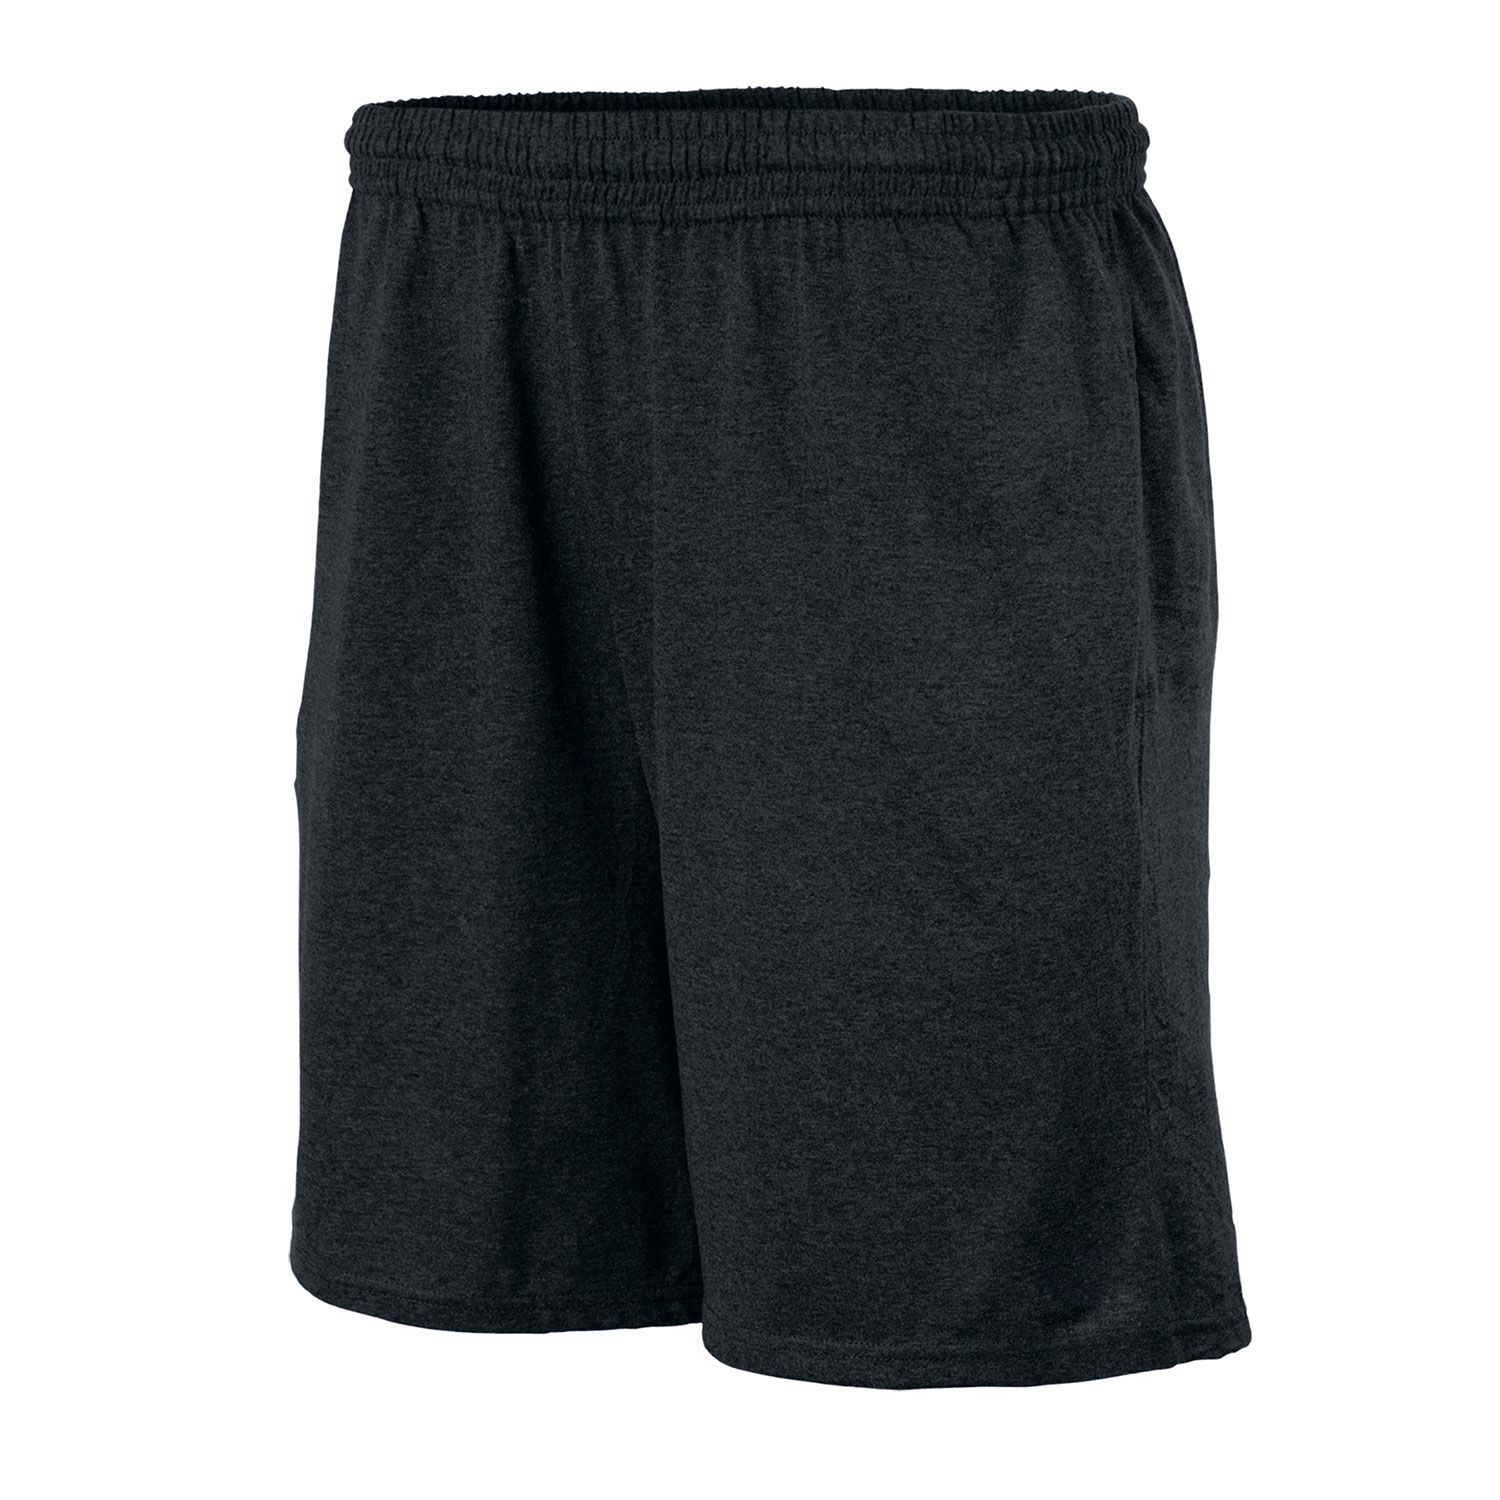 Champion Tactical Classic Jersey Short with Pockets